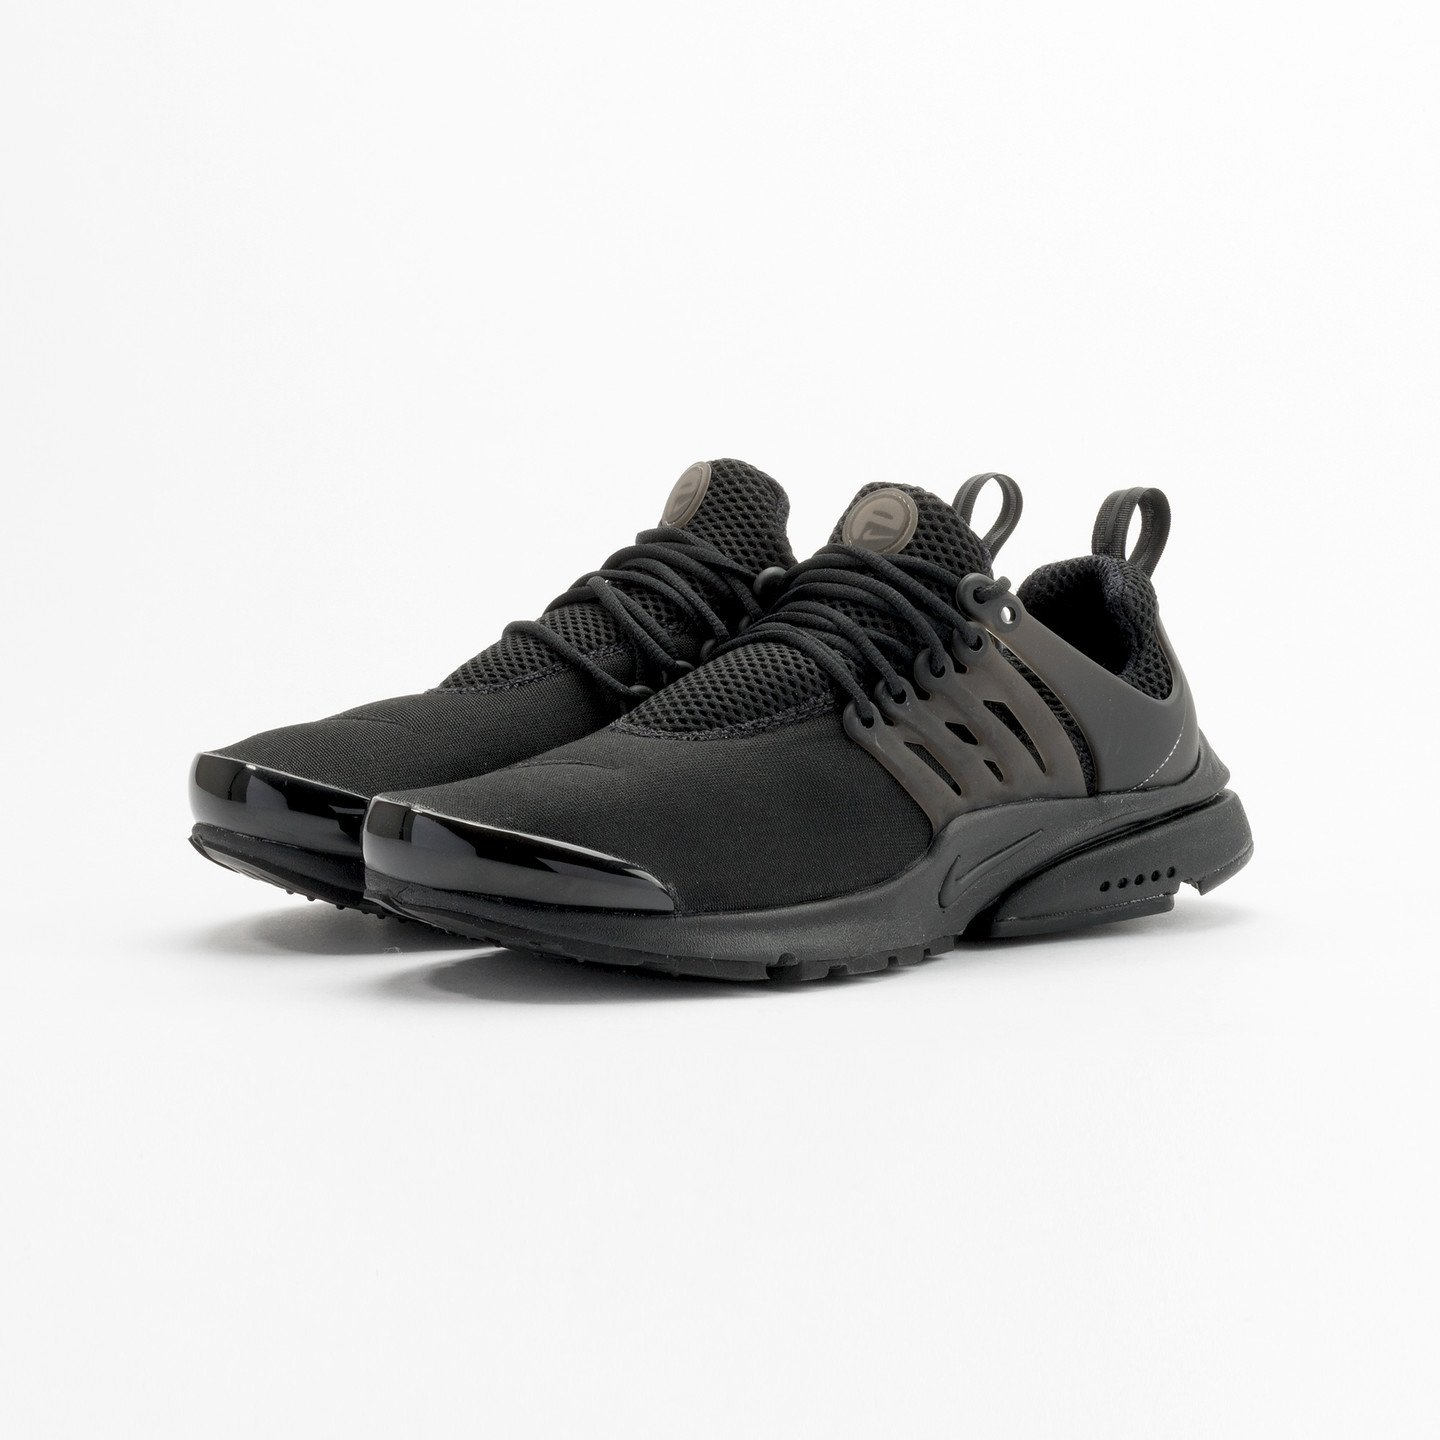 Nike Air Presto Triple Black 848132-009-41